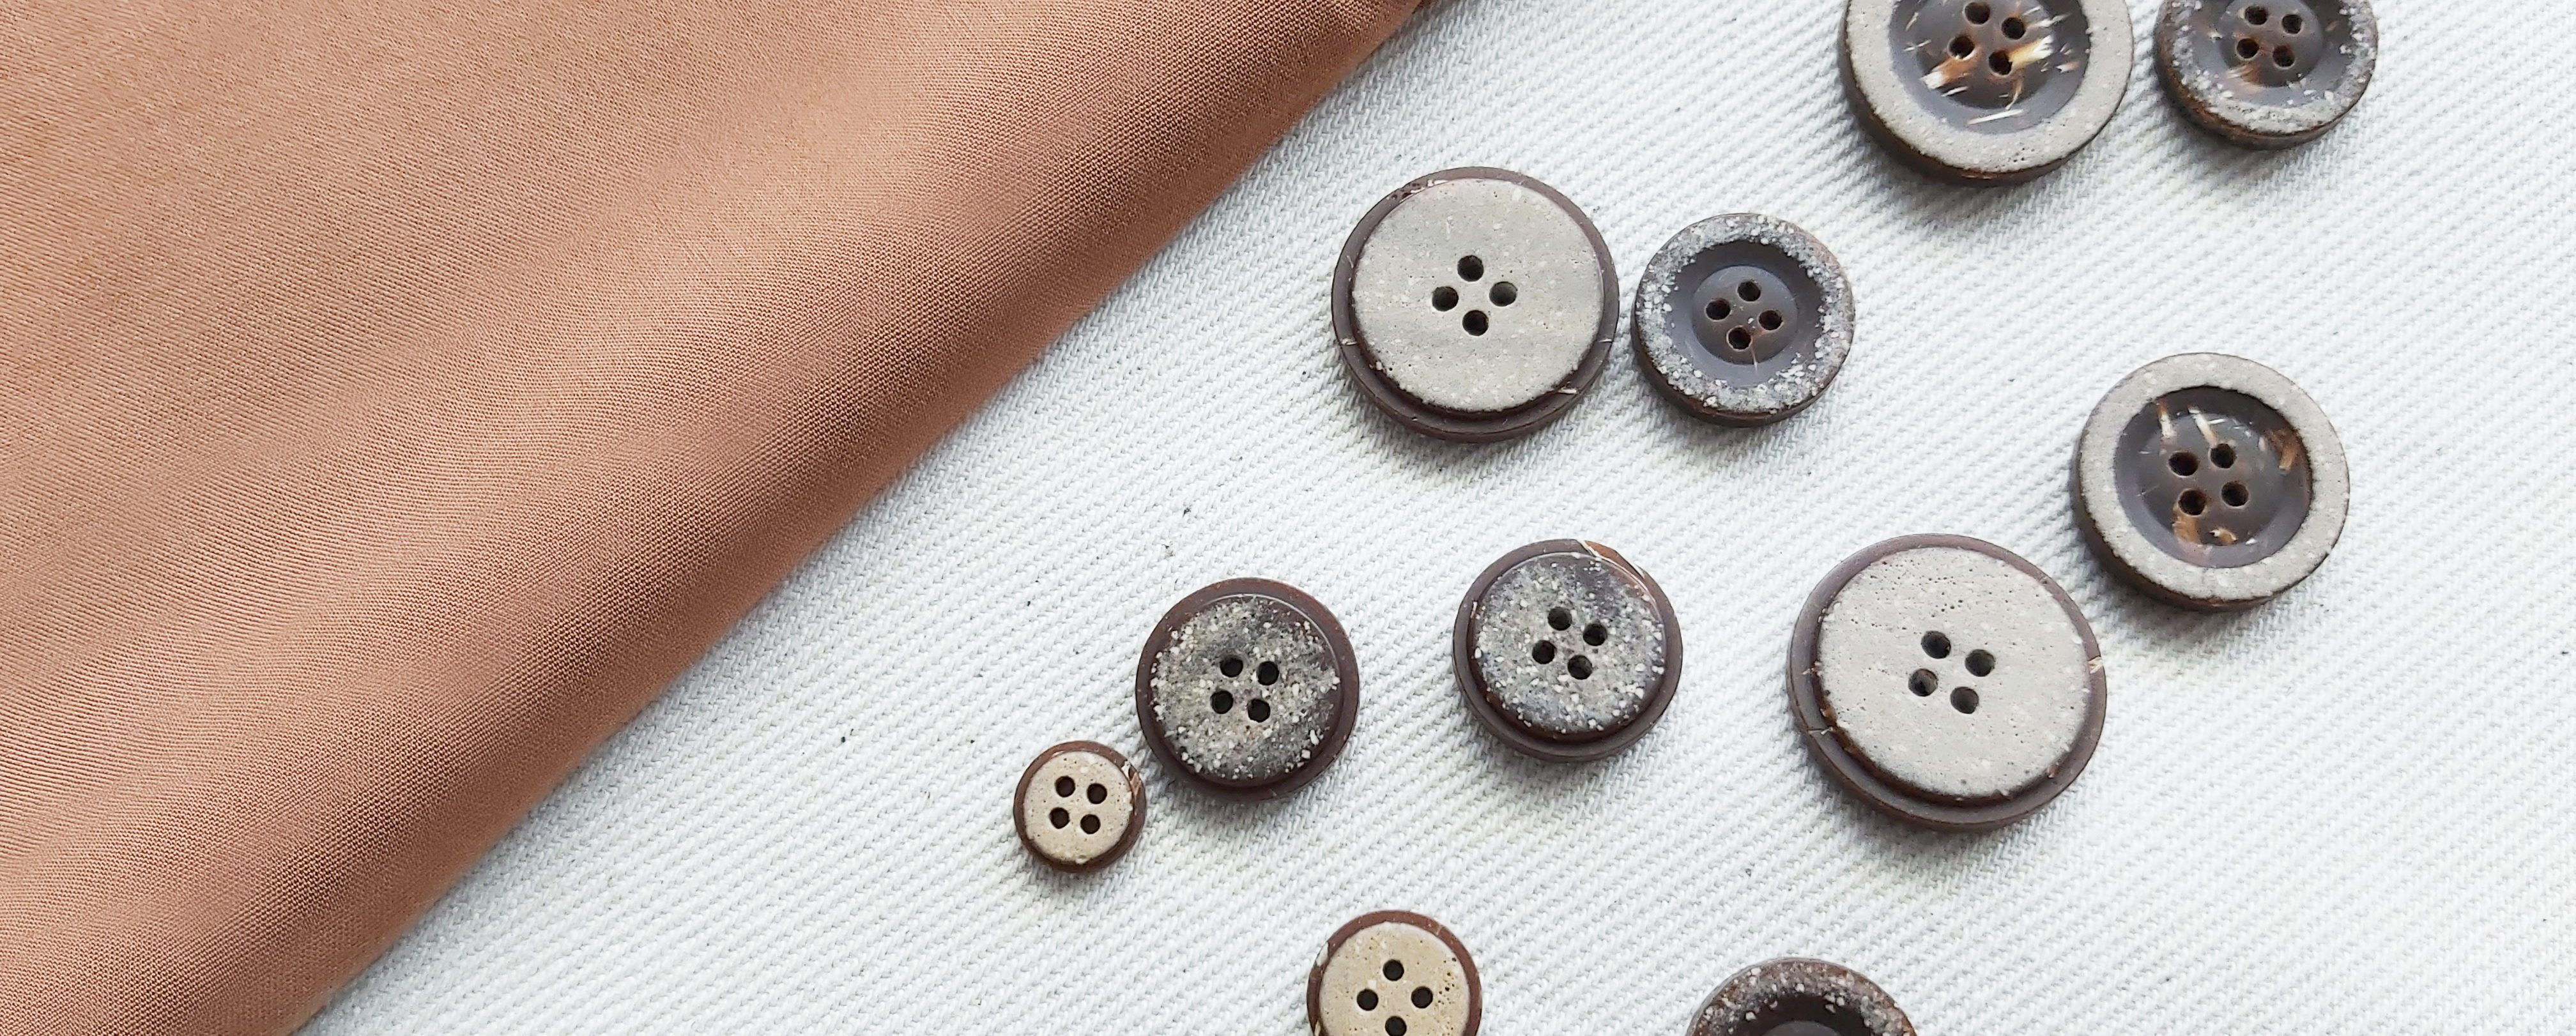 Koala recycled buttons, reeco buttons, recycled, sustainable work